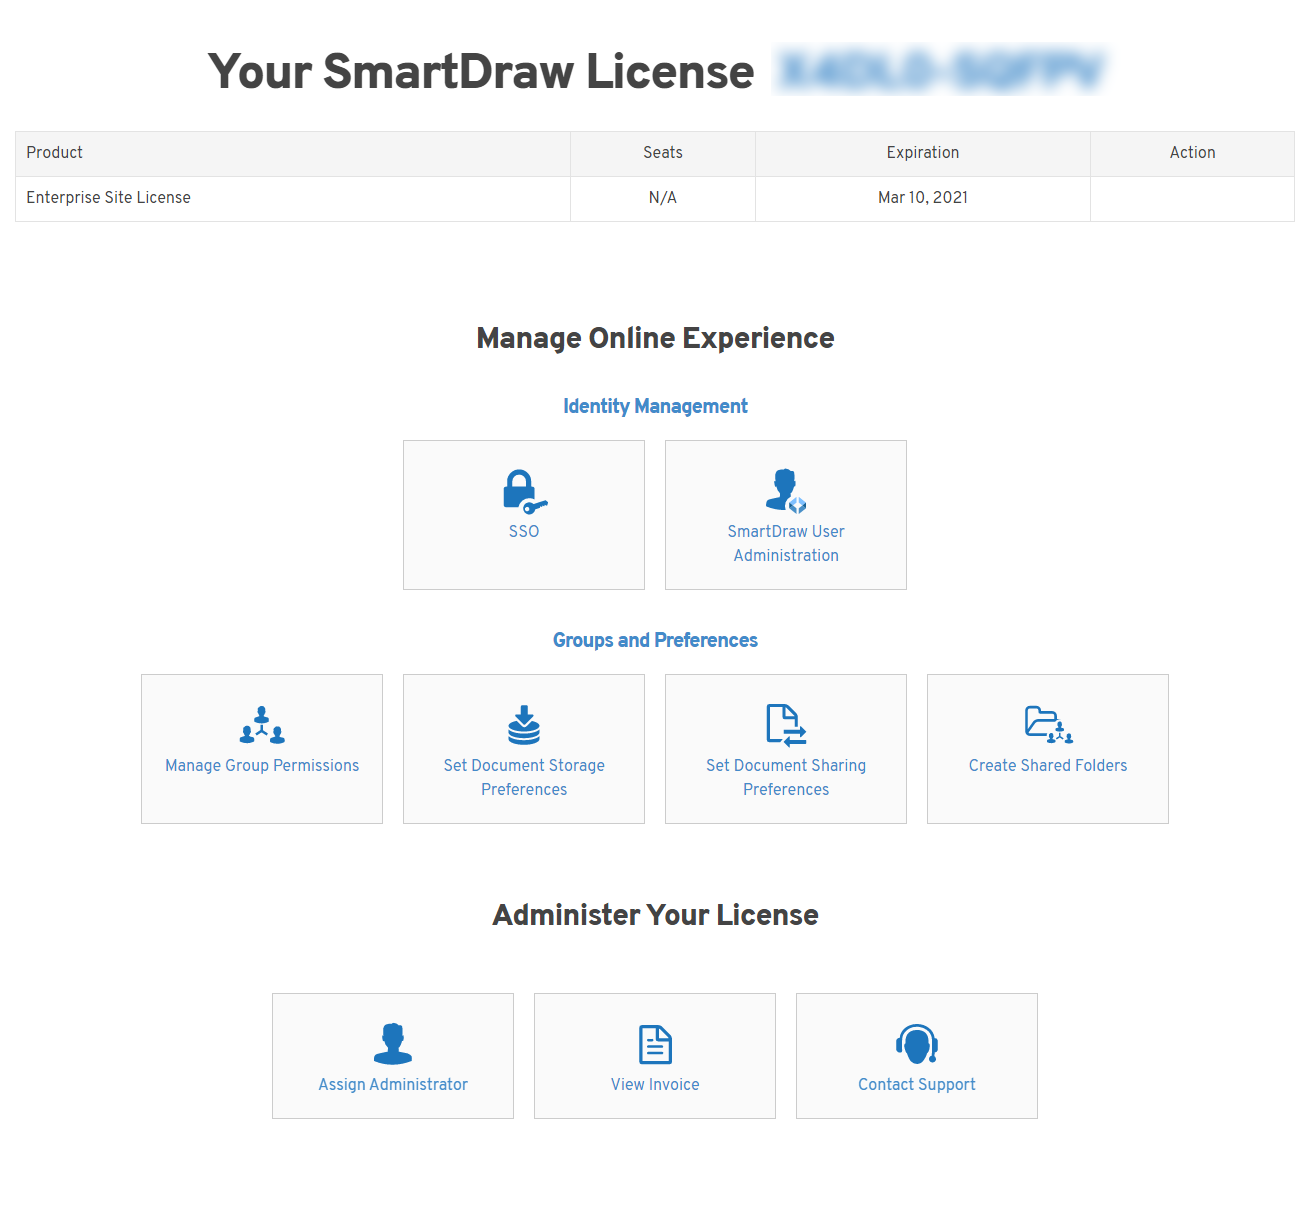 Managing your license